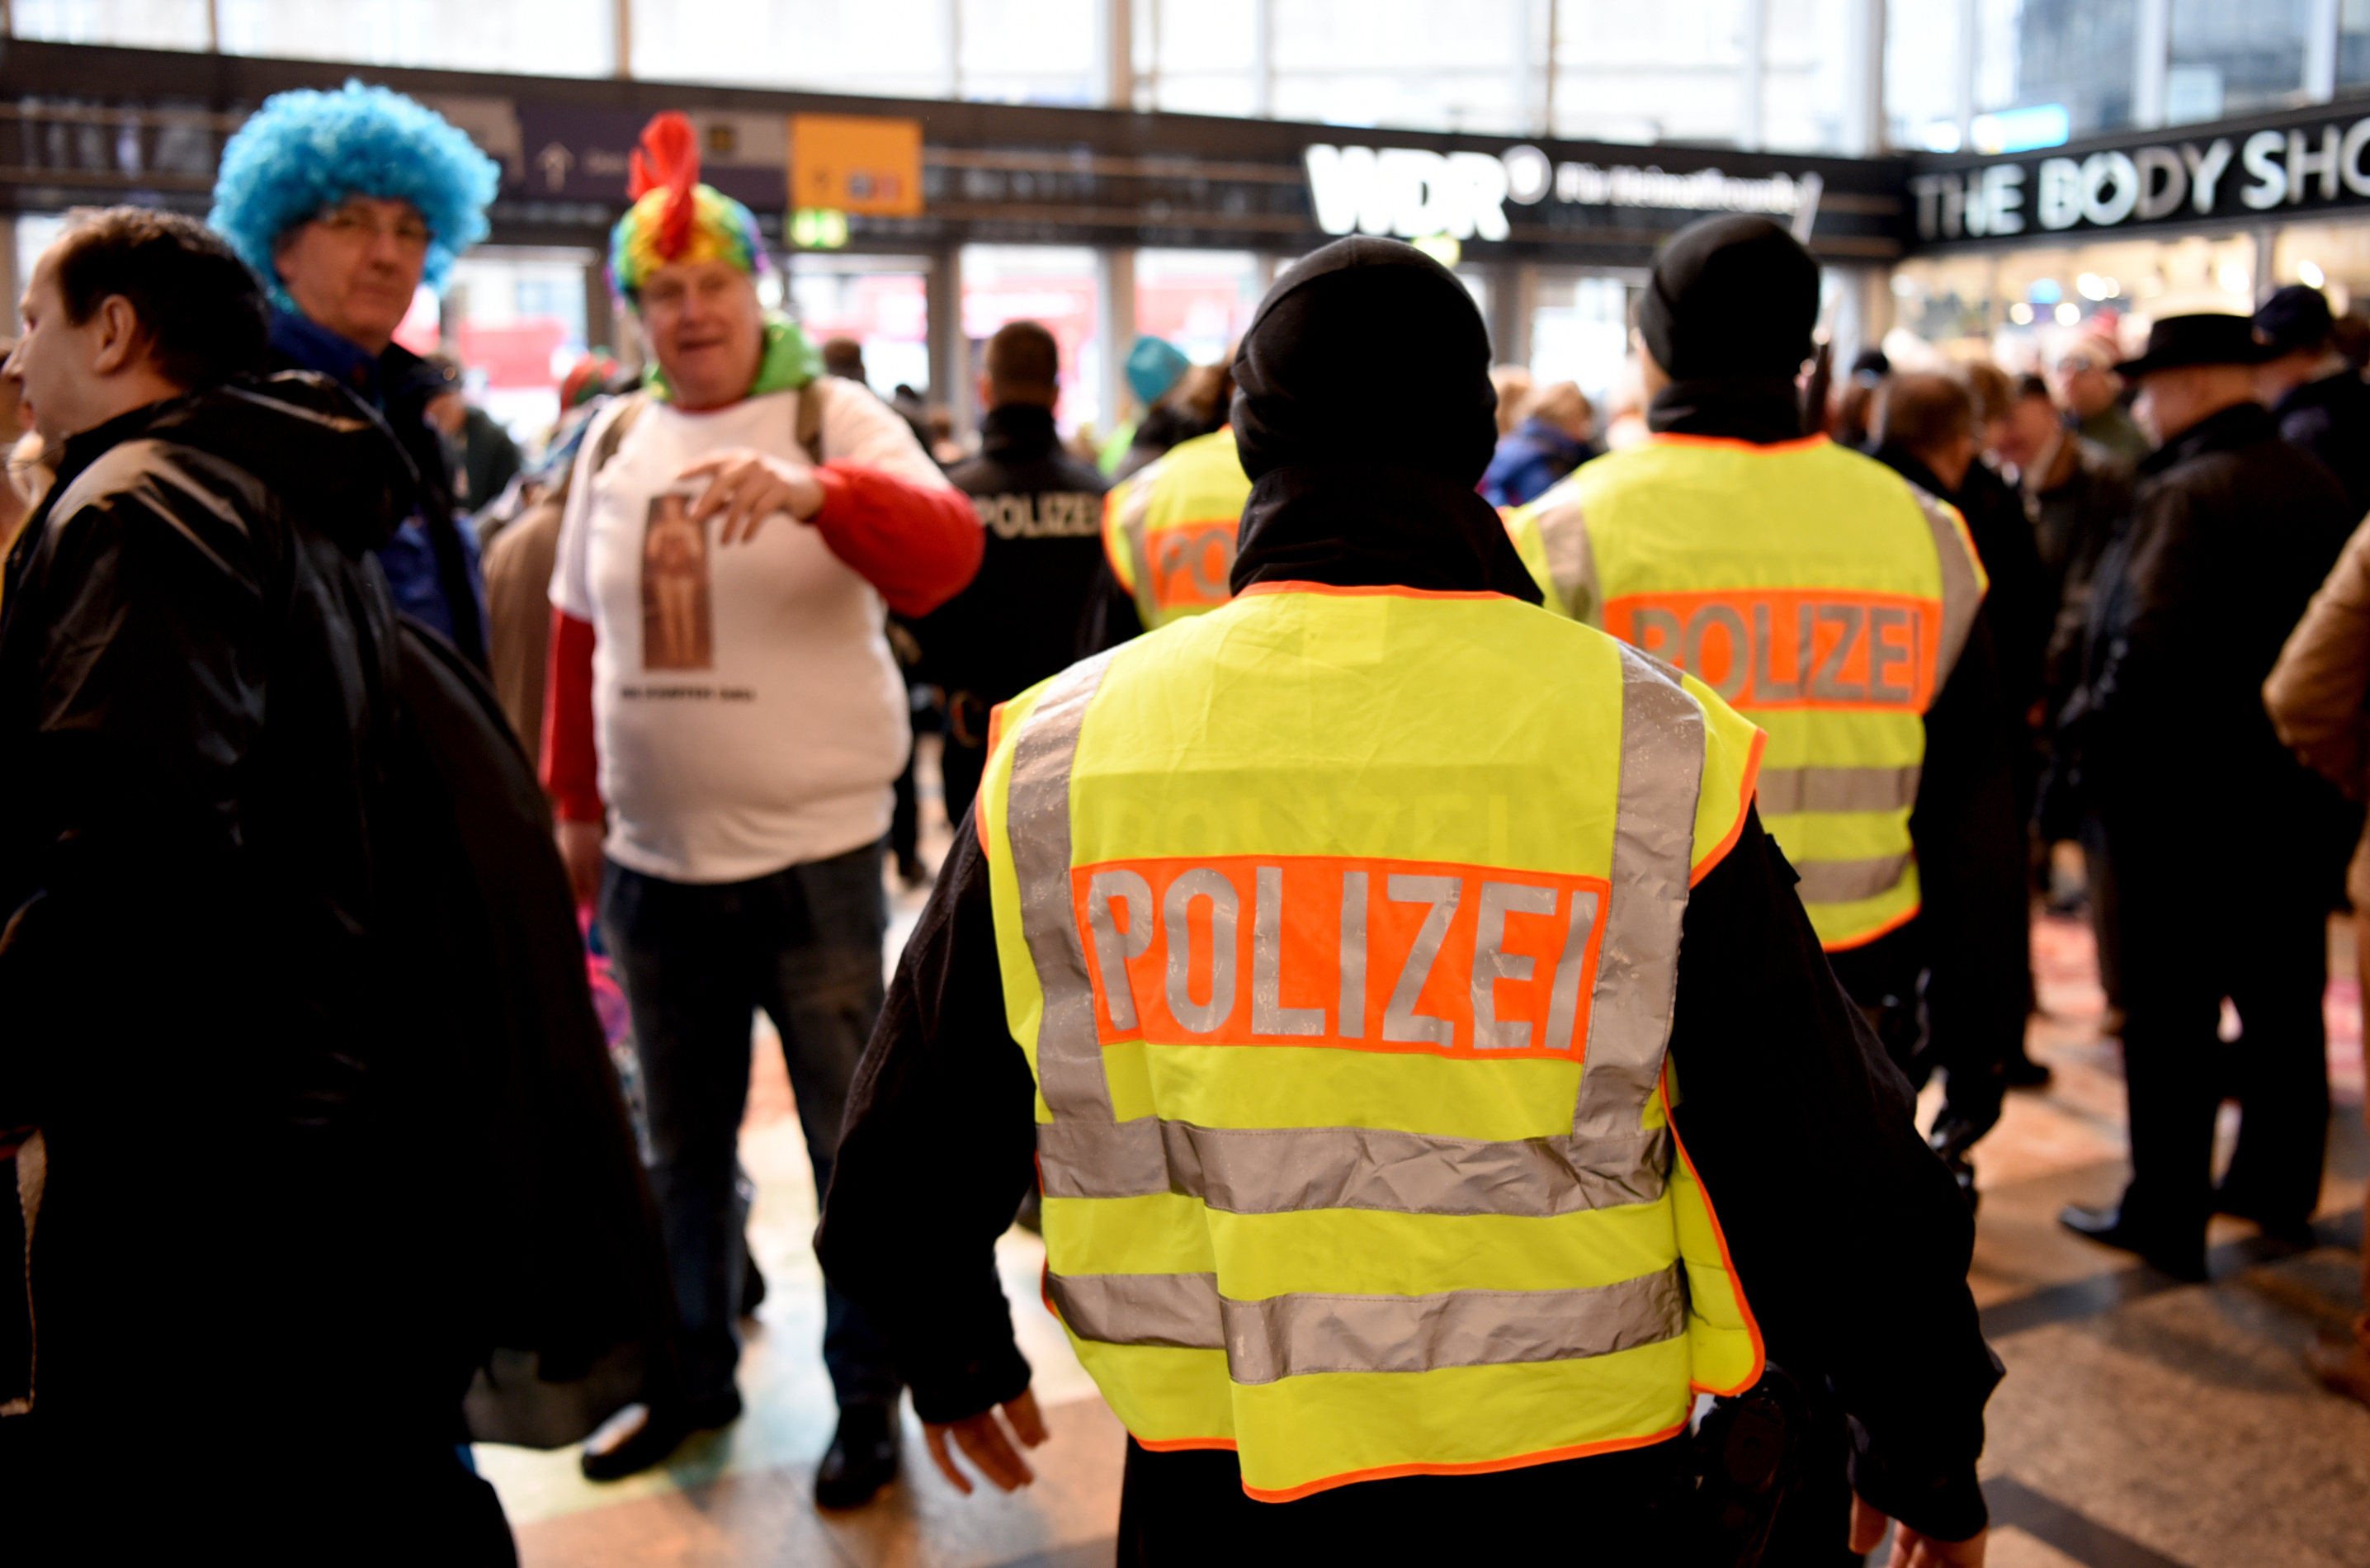 Police officers, part of beefed-up security to prevent sexual assaults, stand near the central station in Cologne on Feb. 4 as Carnival kicks off.